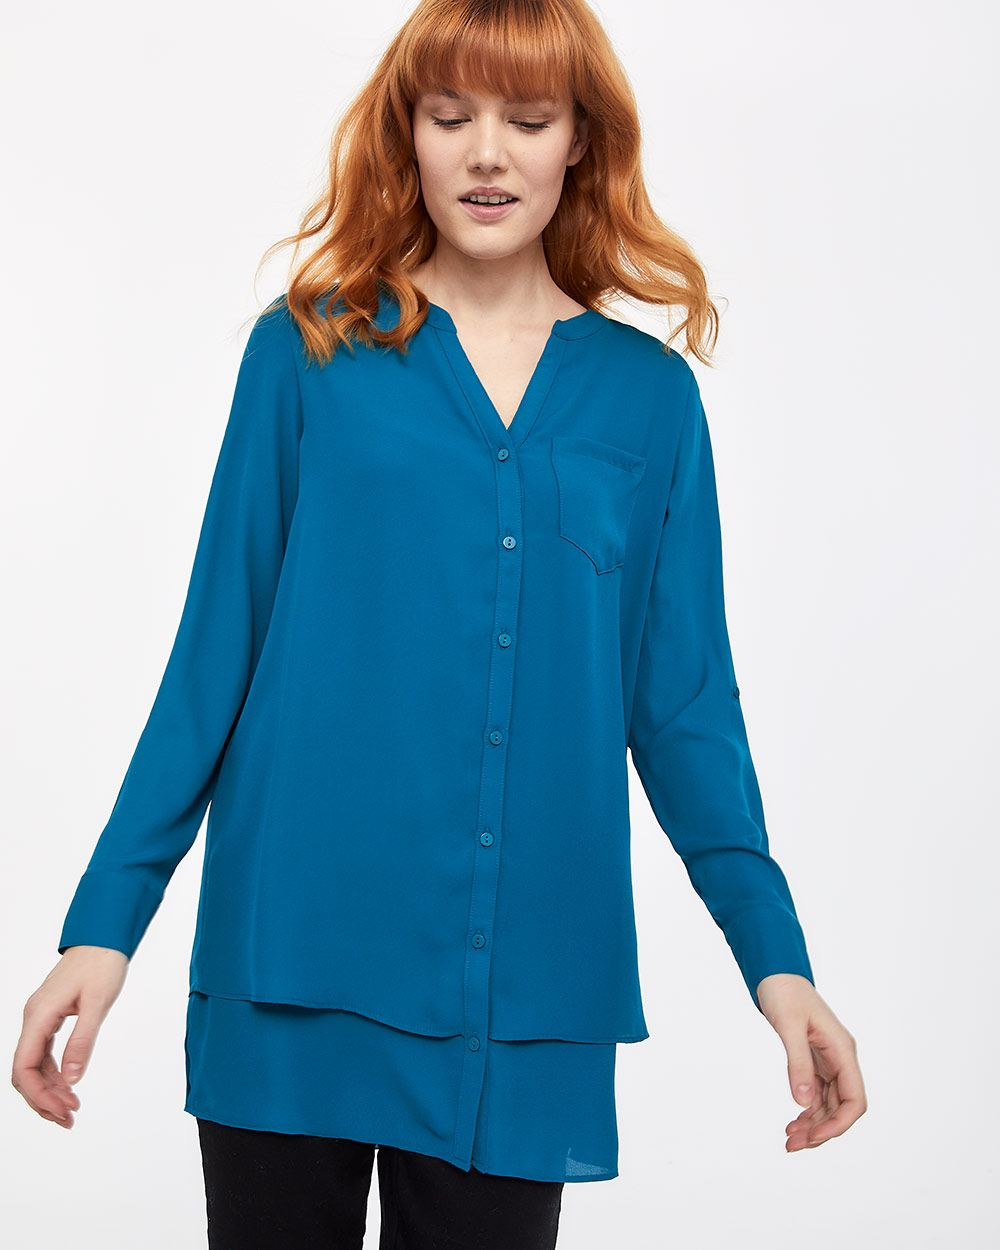 2-tier Blouse